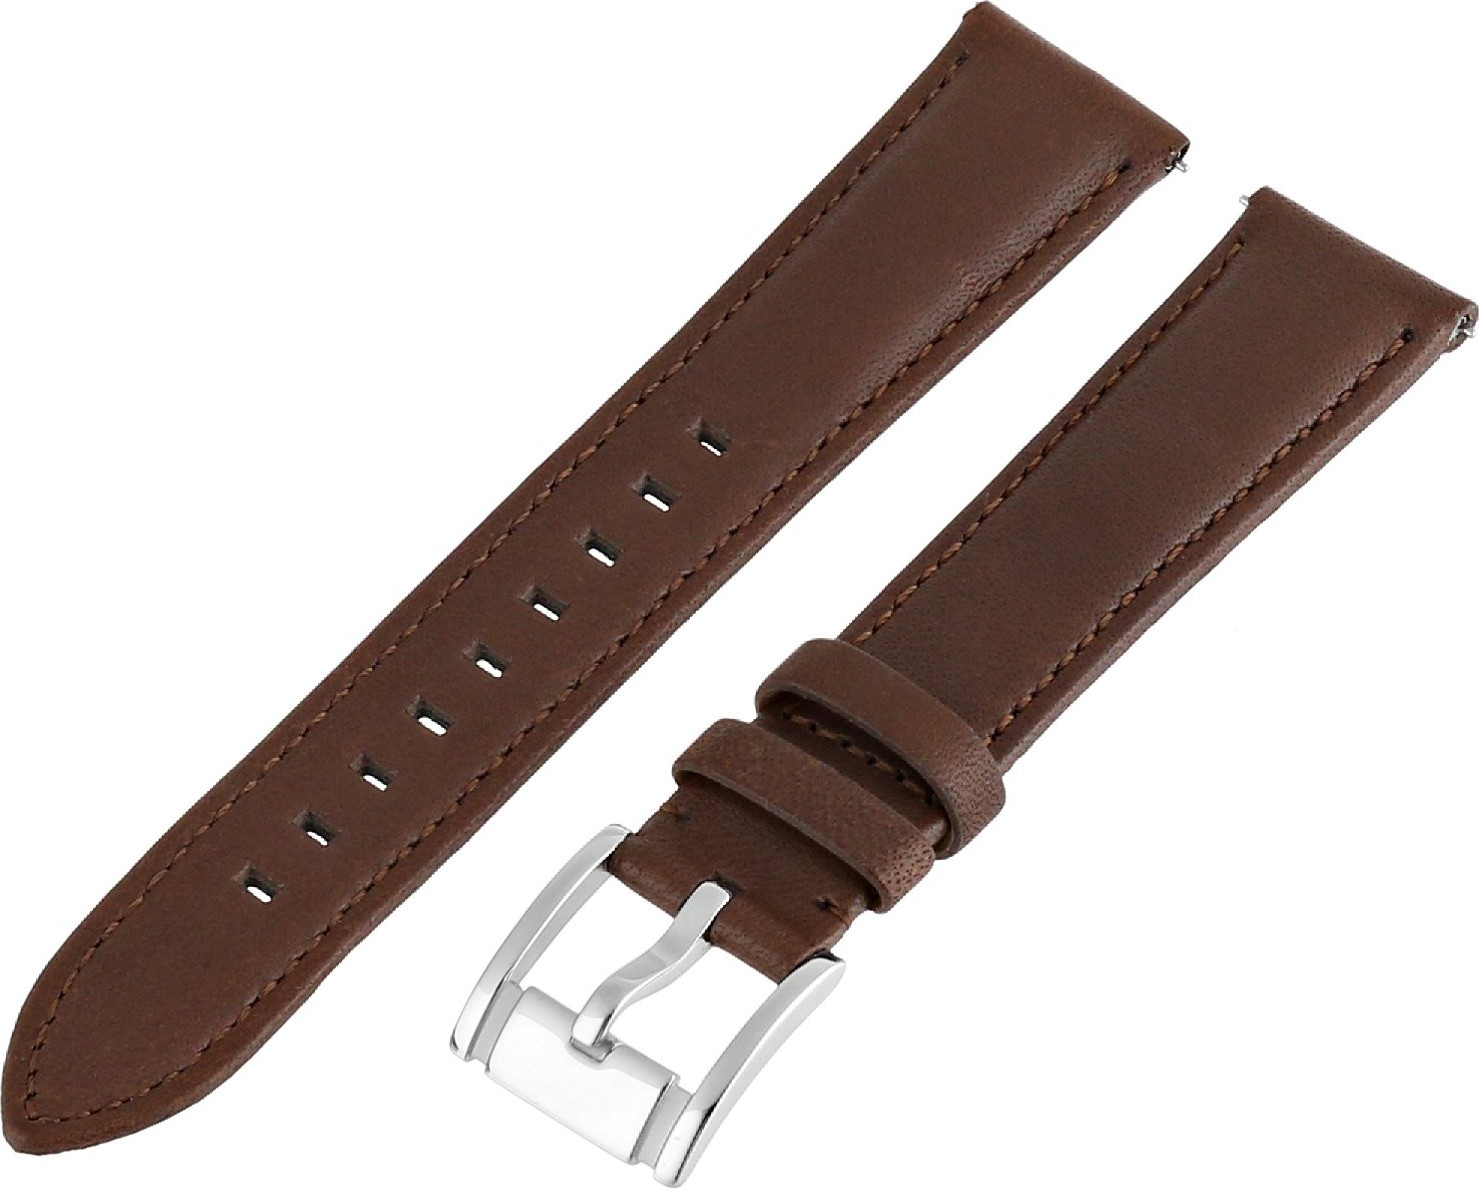 Fossil Women's Leather Watch Strap - Dark Brown 18mm